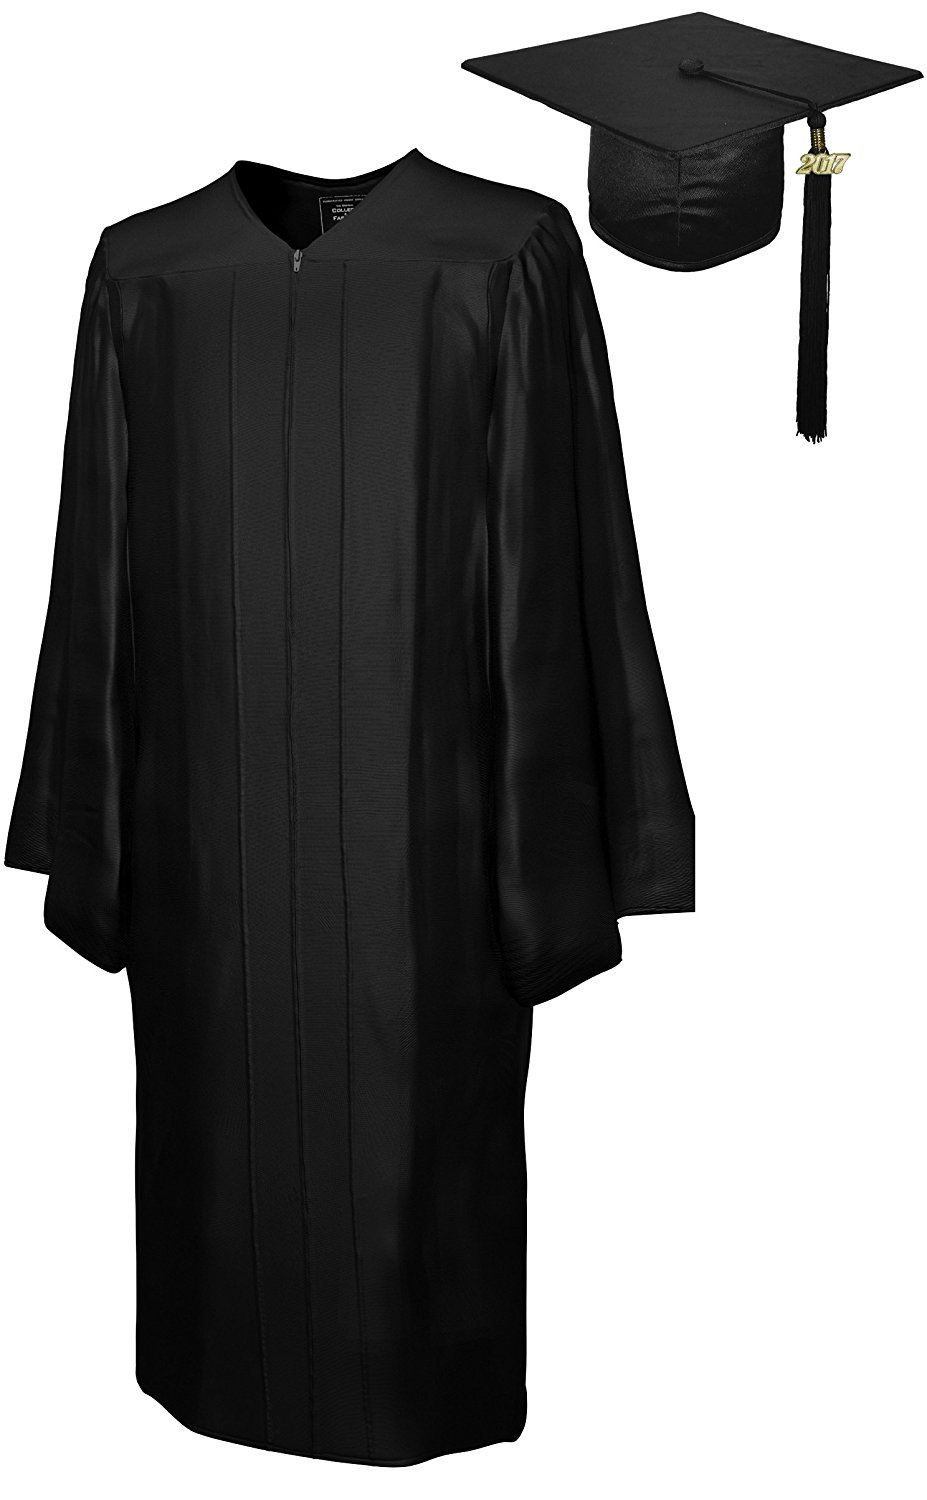 Unique Black Cap And Gown For Sale Mold - Wedding and flowers ...